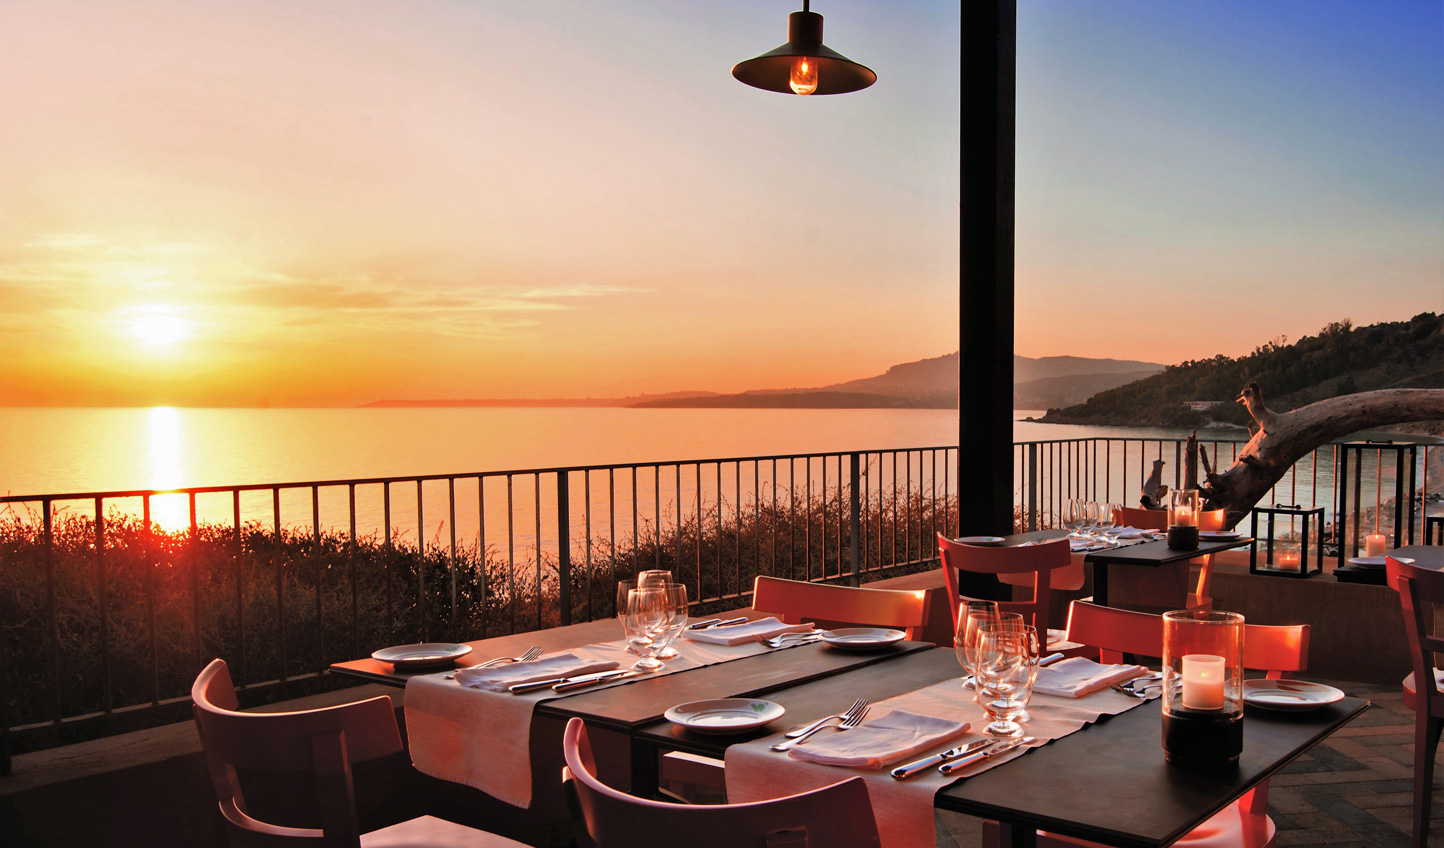 Dinner with the sun setting over the Mediterranean? Yes please.